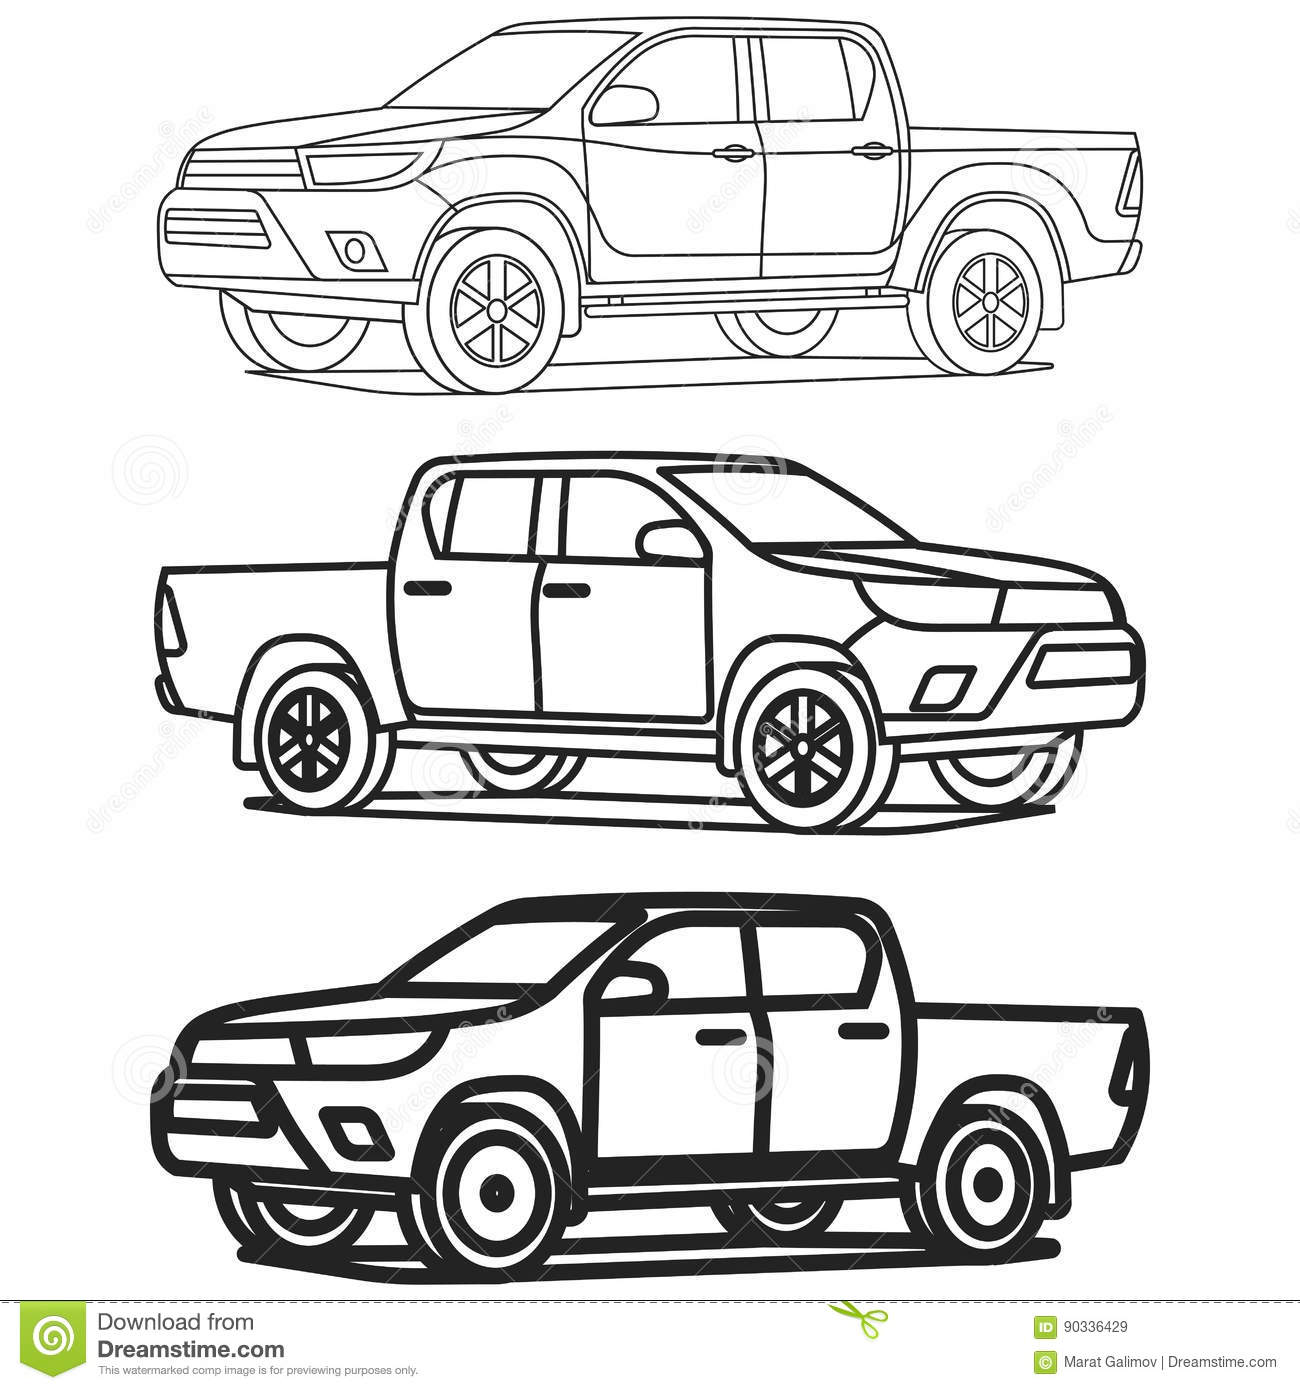 Le Contour De Camion Pick Up A Place Sur L Illustration